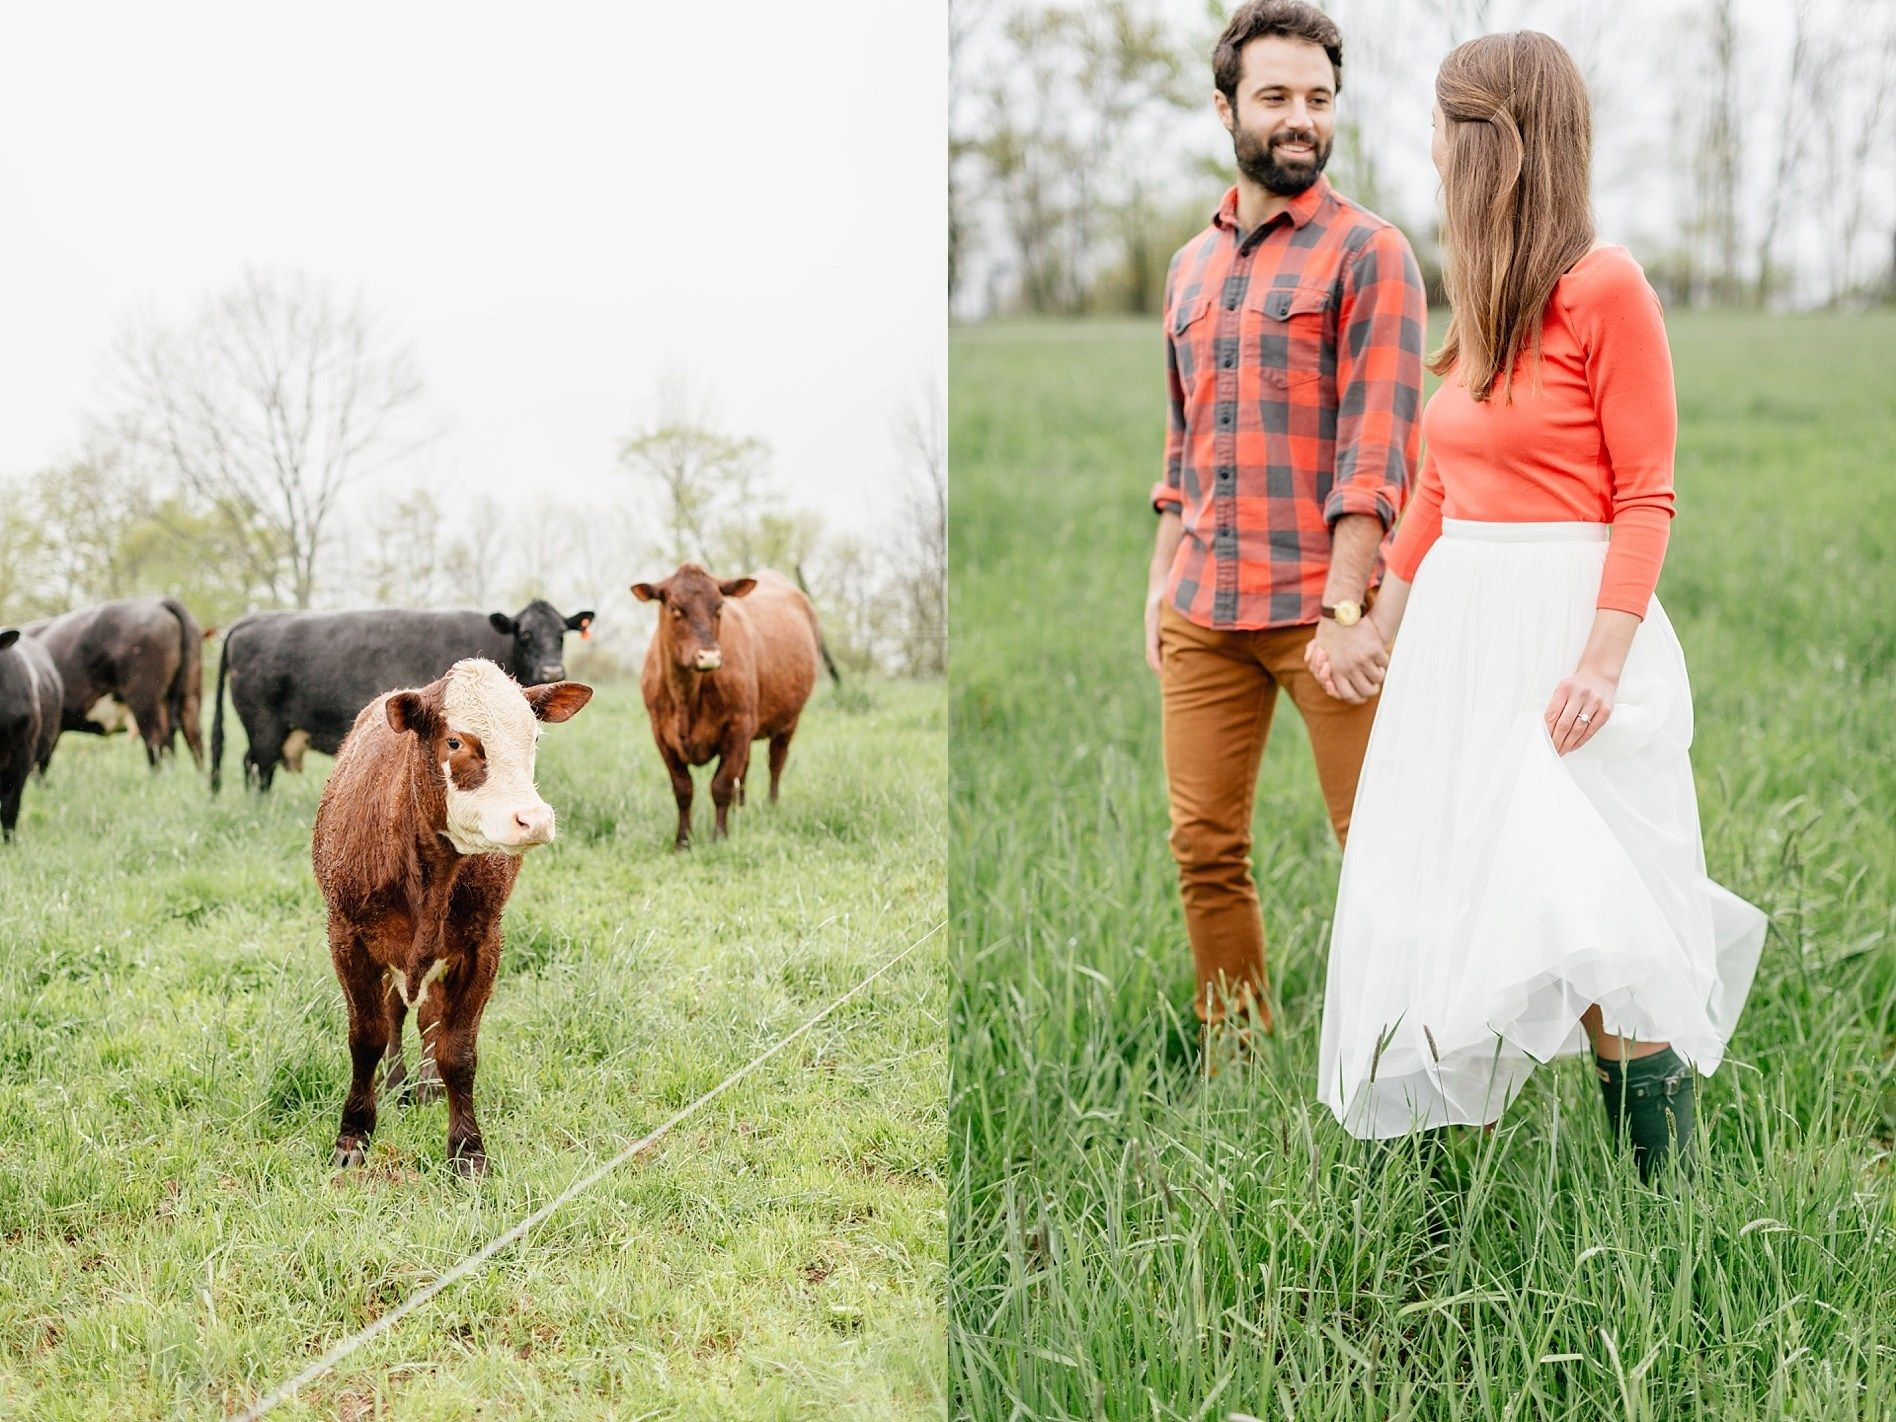 rainy day engagement session at fox hill farm sarah canning photography in 2020 engagement session philadelphia wedding photographer rainy day pinterest